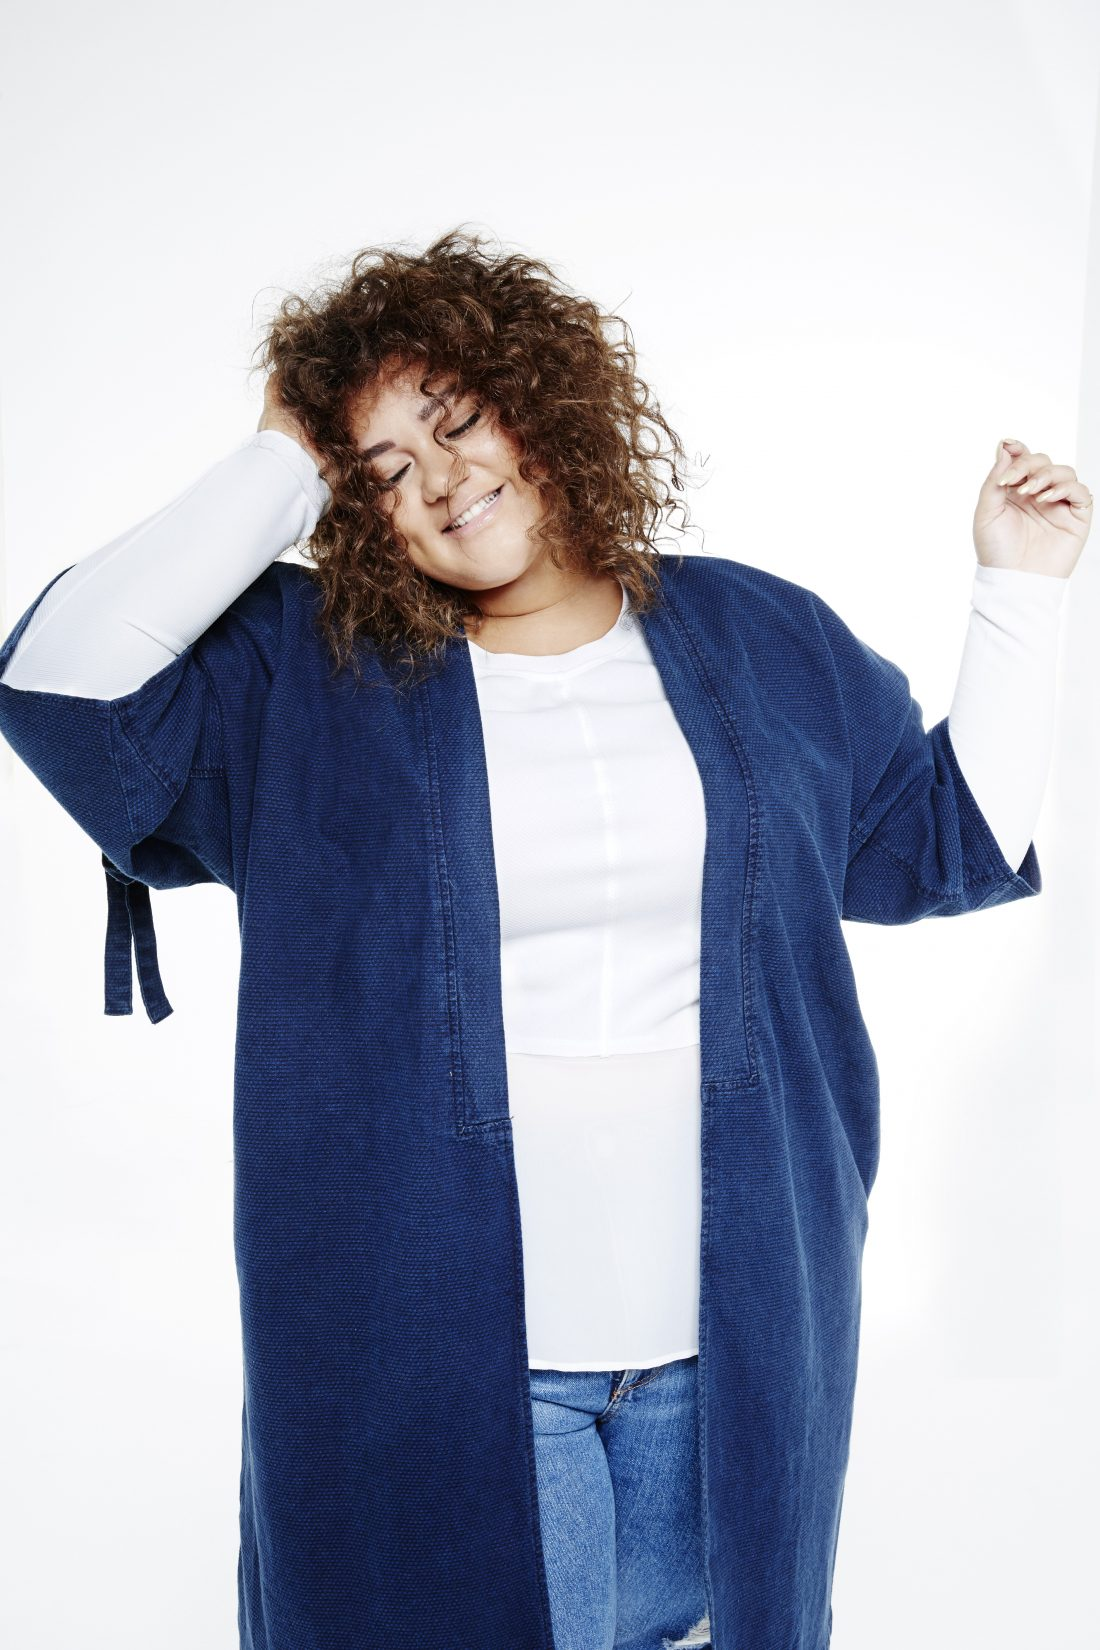 We meet the poster woman for body positivity: Grace Victory